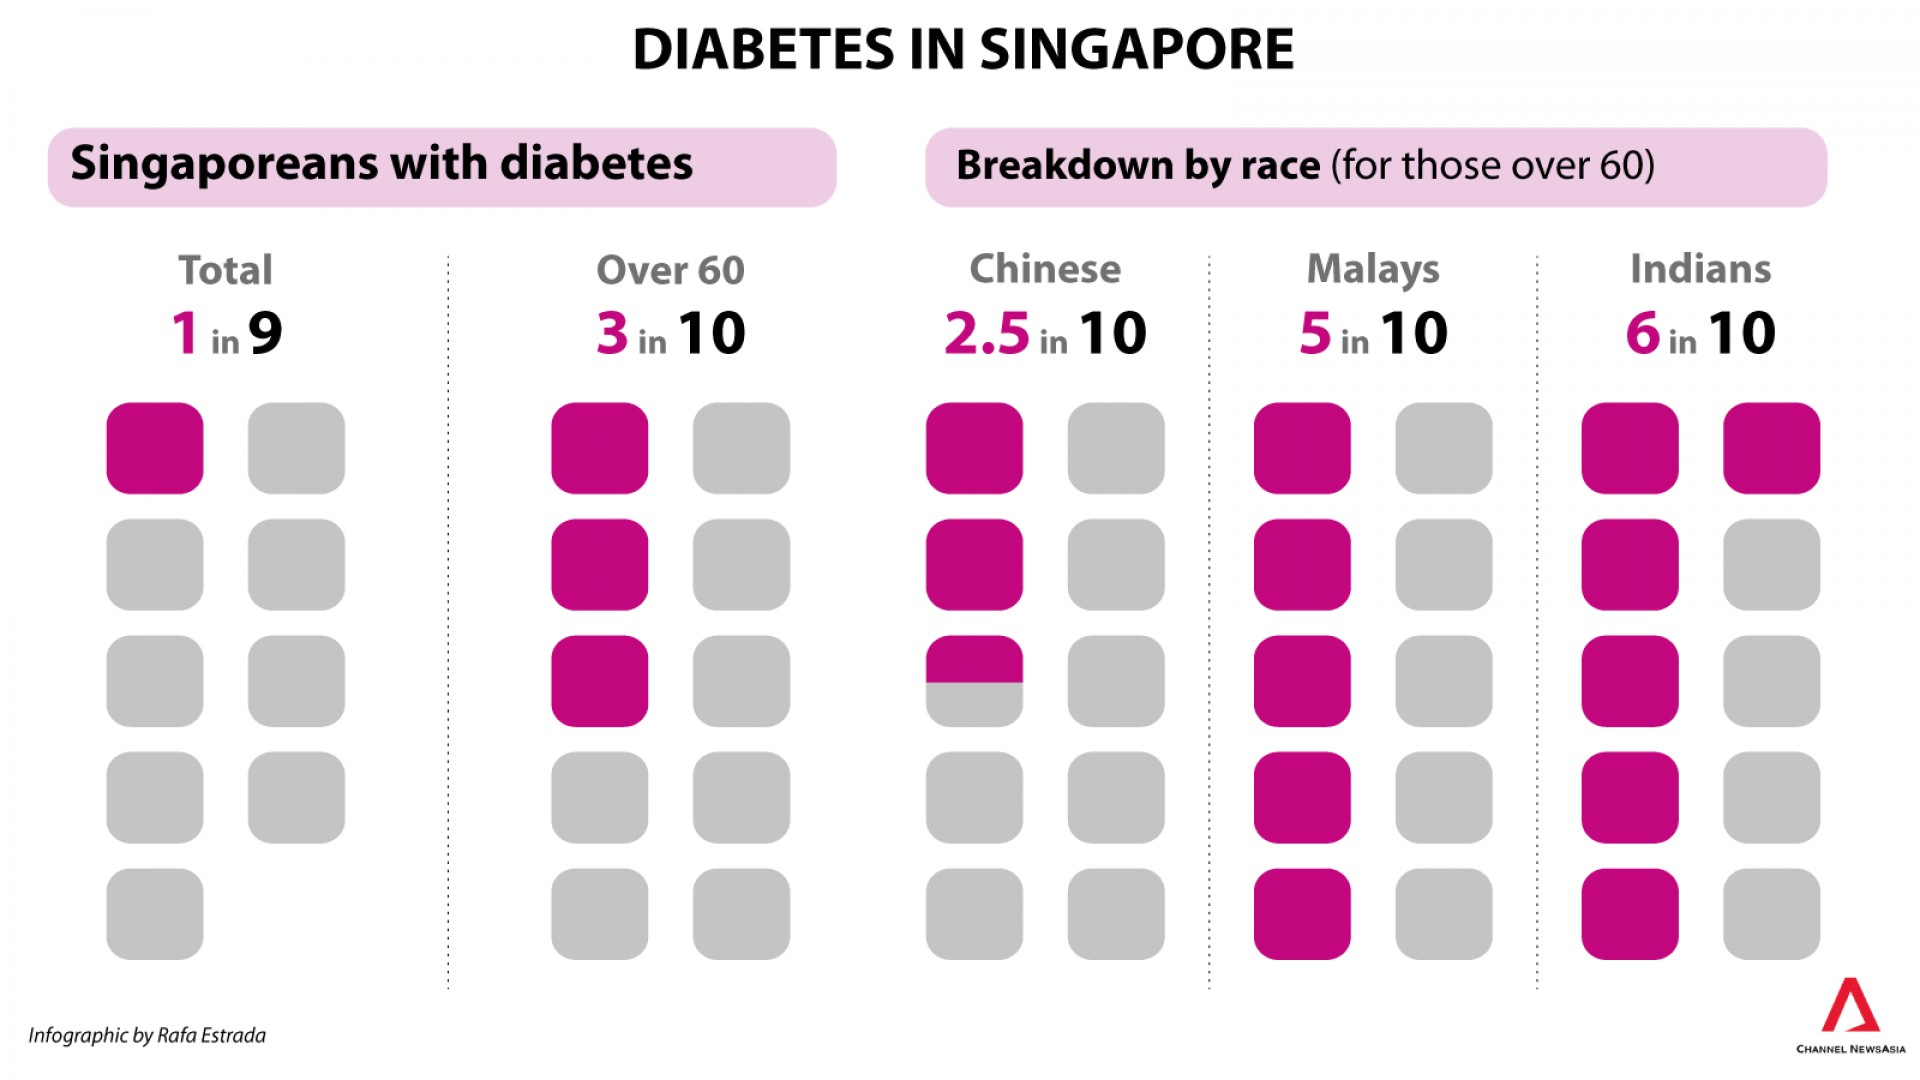 016 Ndr Diabetes In Singapore By Cnaresize16002c900 Research Paper Striking Example 1920